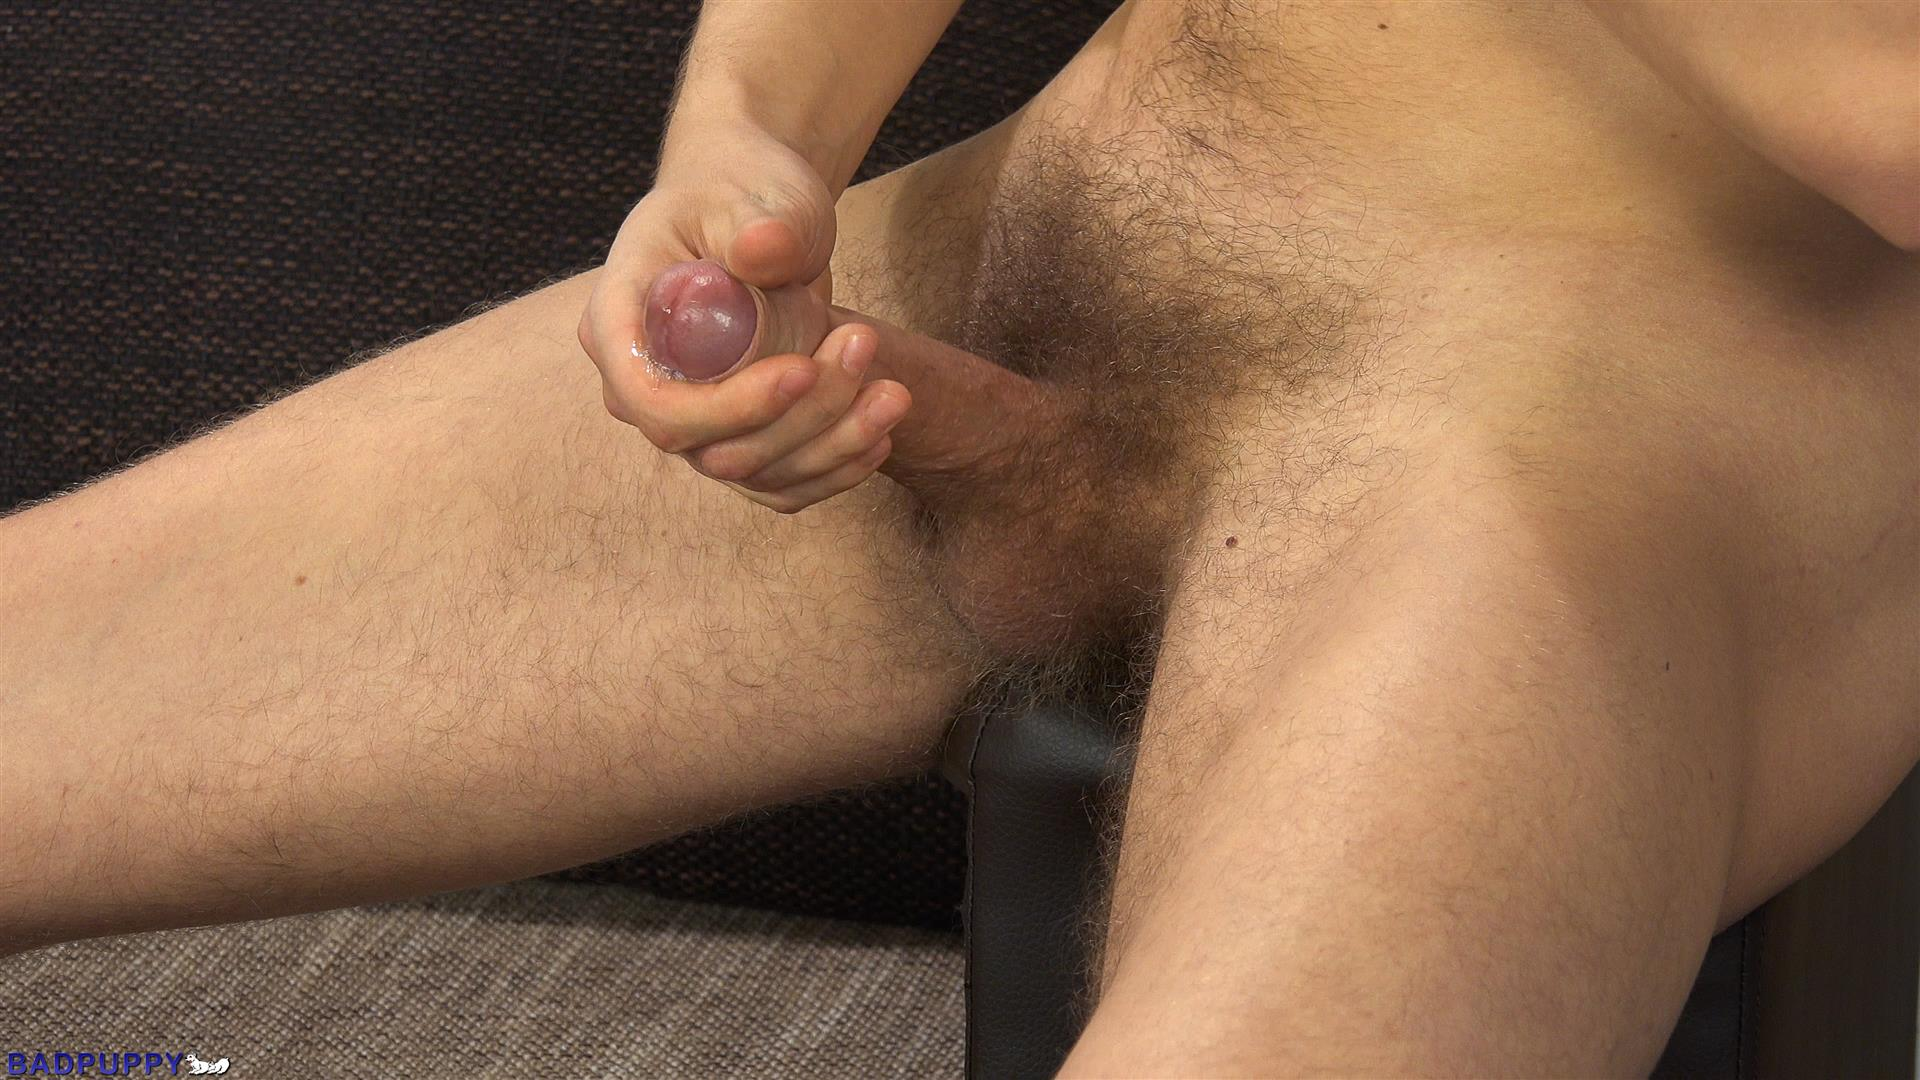 Oleg Moloda Badpuppy Straight Czech Jock With Big Uncut Cock Amateur Gay Porn 18 Straight Czech Muscle Jock Auditions For Gay Porn